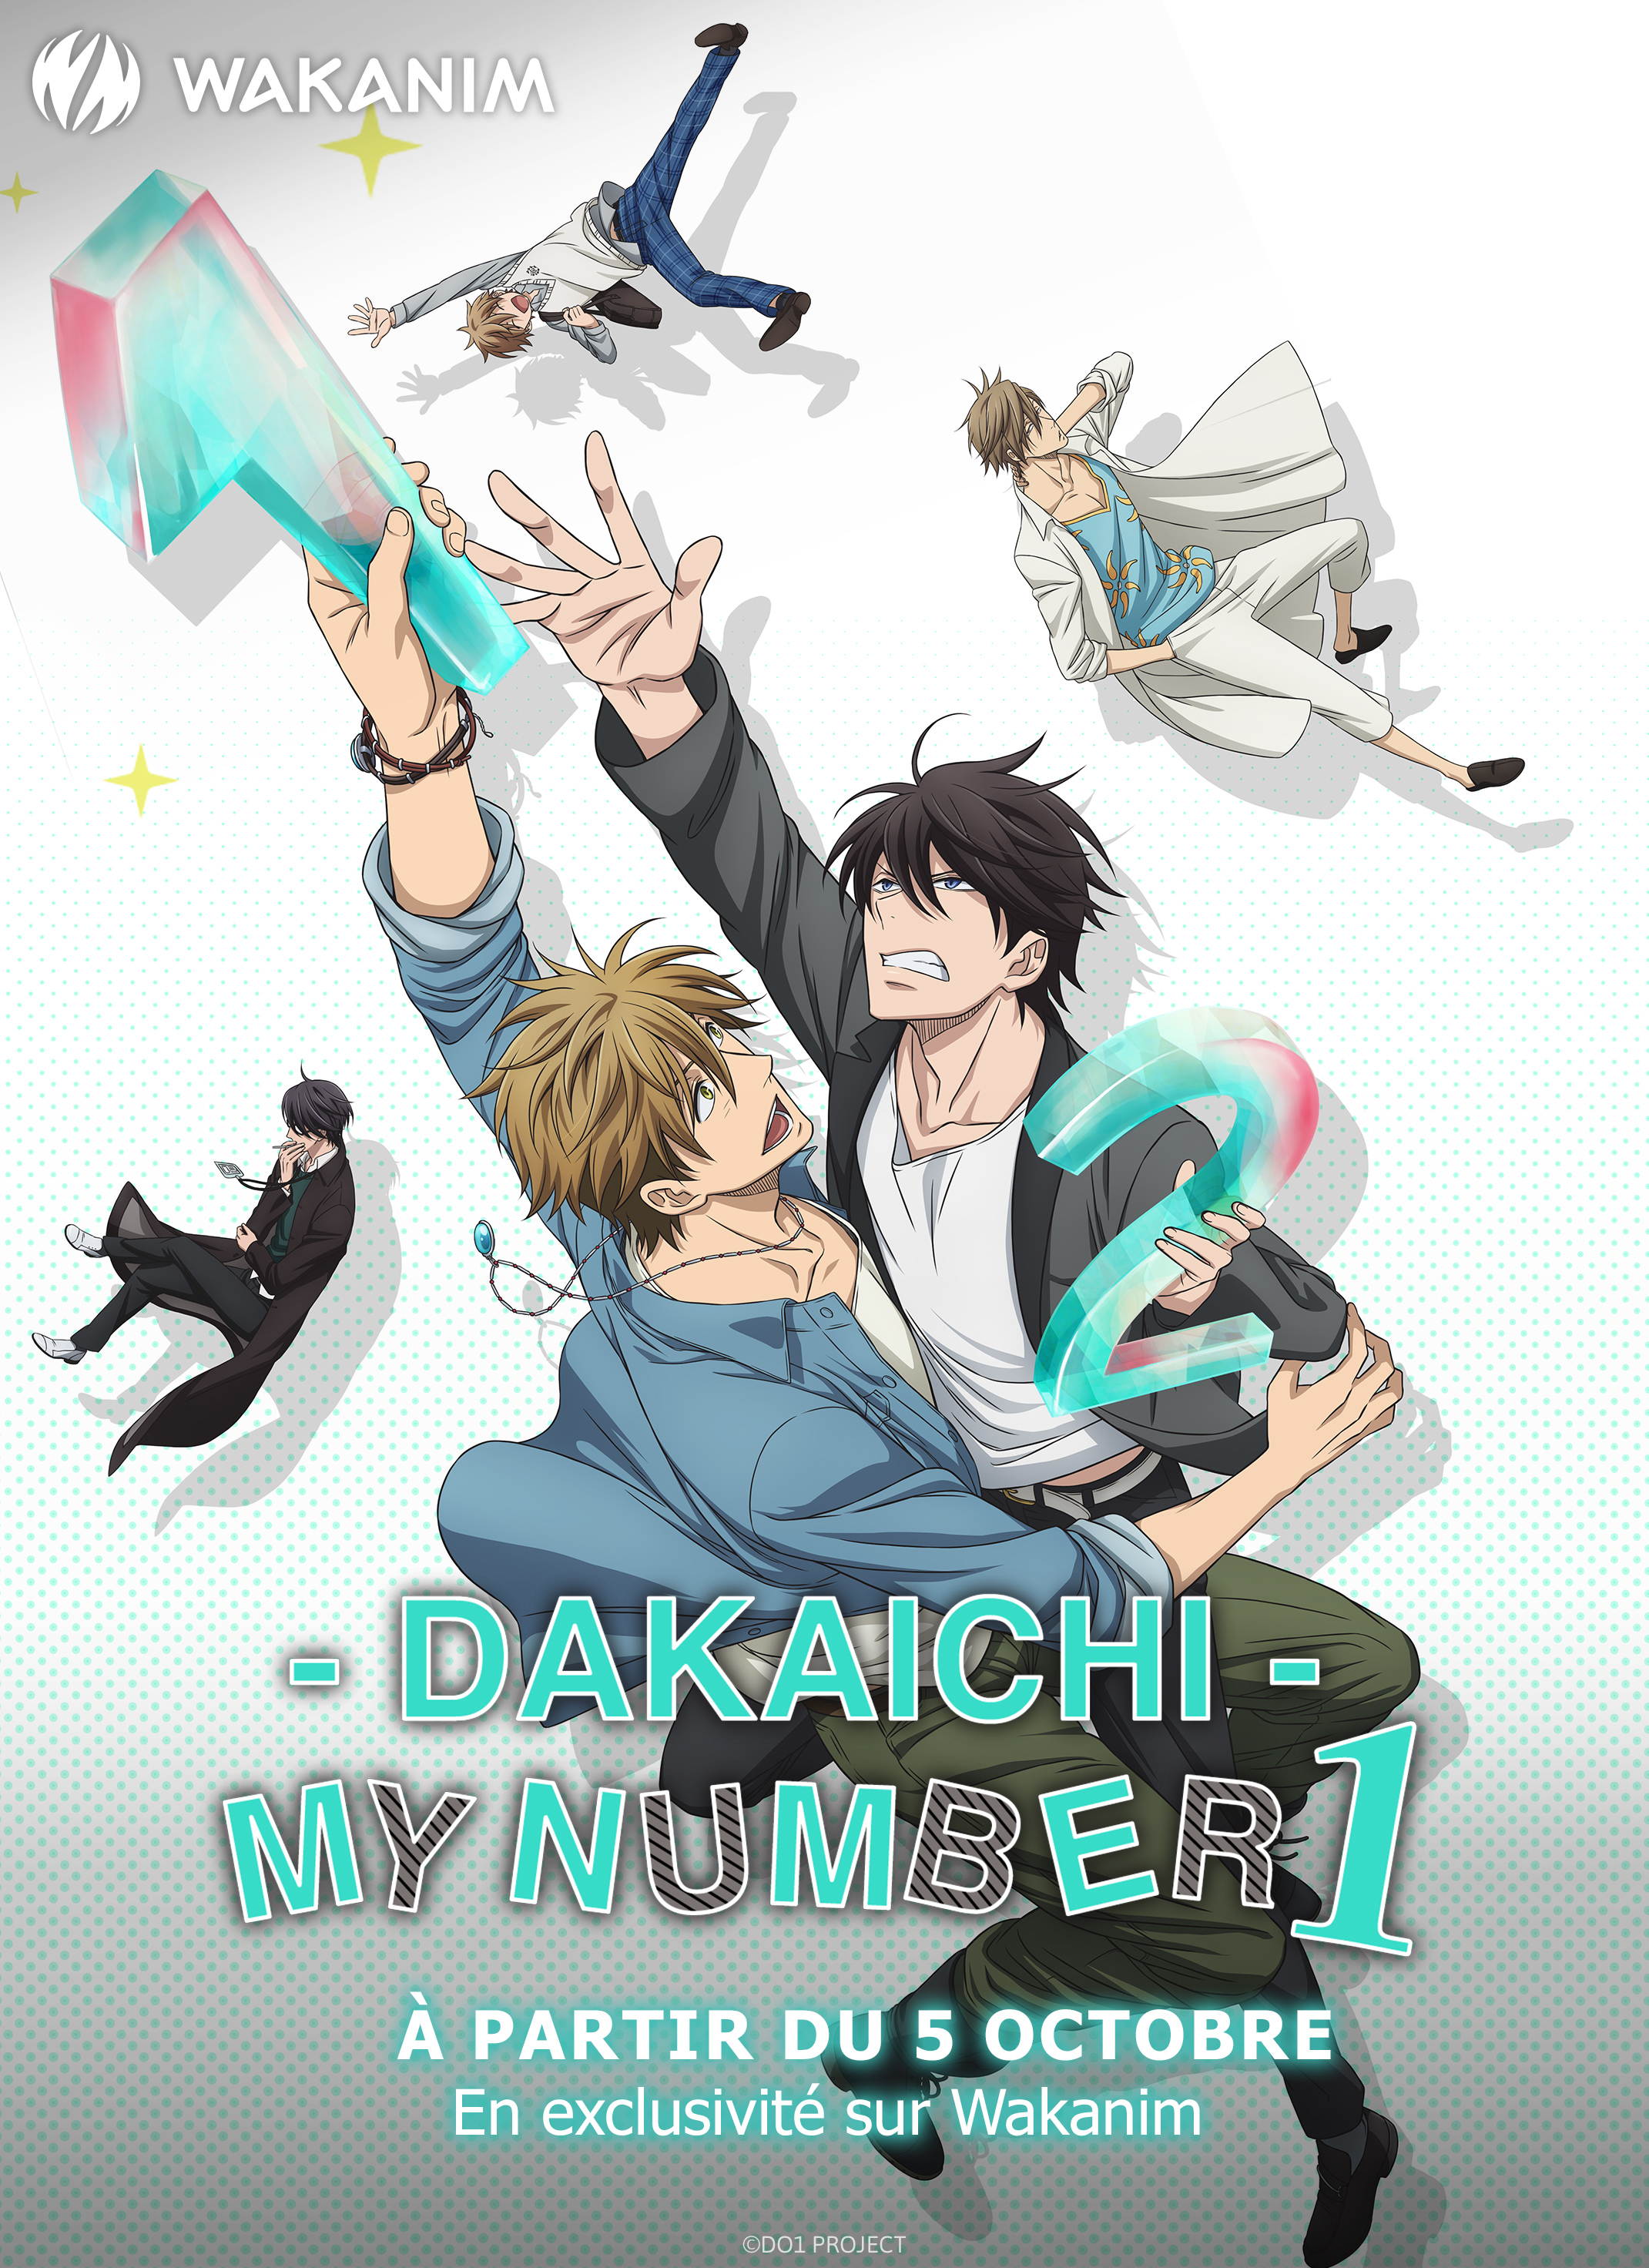 Dakaichi My Number 1 exclusively on Wakanim